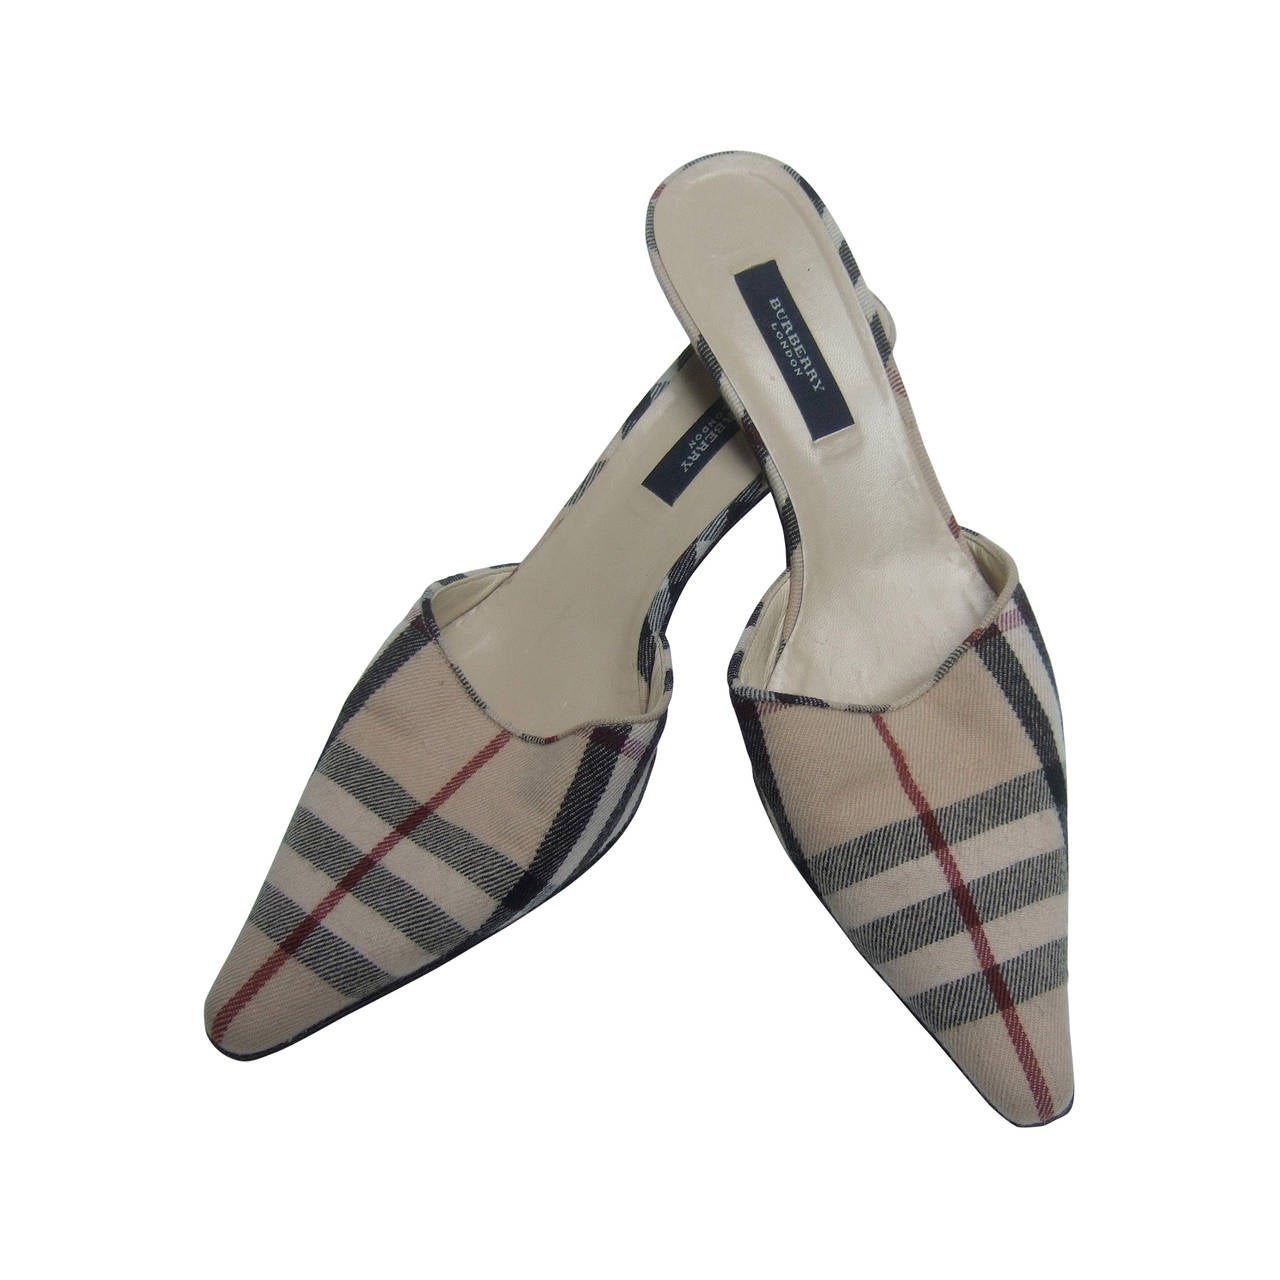 Burberry London Classic Nova Plaid Wool Mules Made in Italy Size 37.5 1